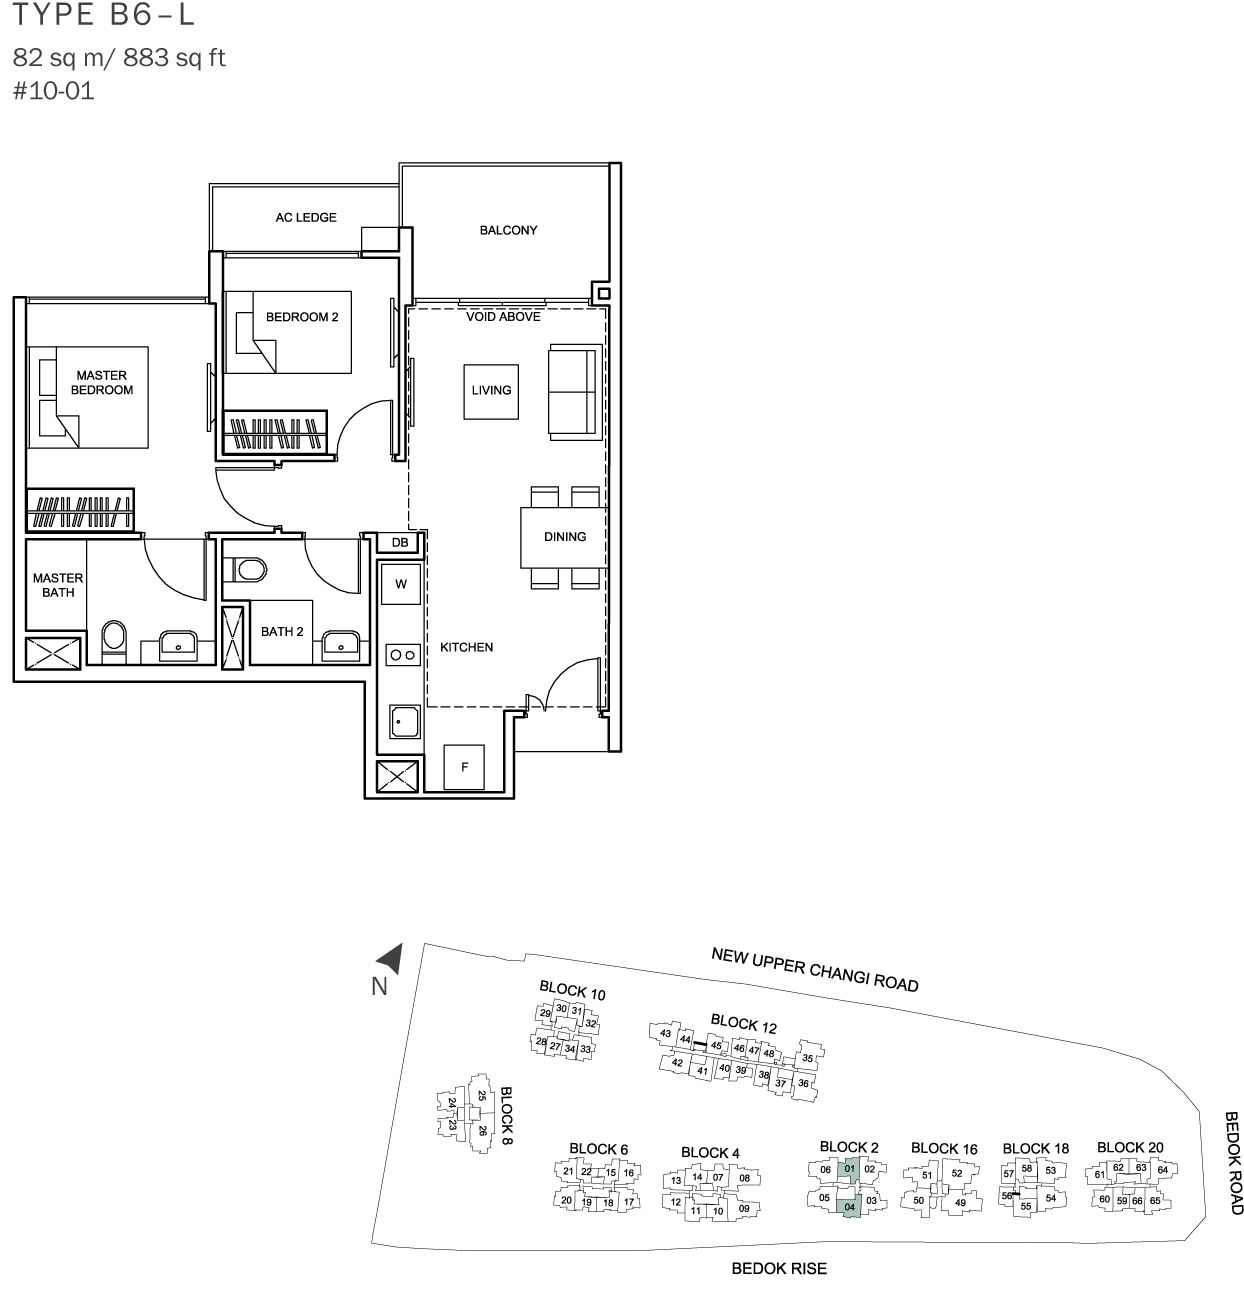 Singapore Condo Interior Design: The Glades Condo Floor Plan